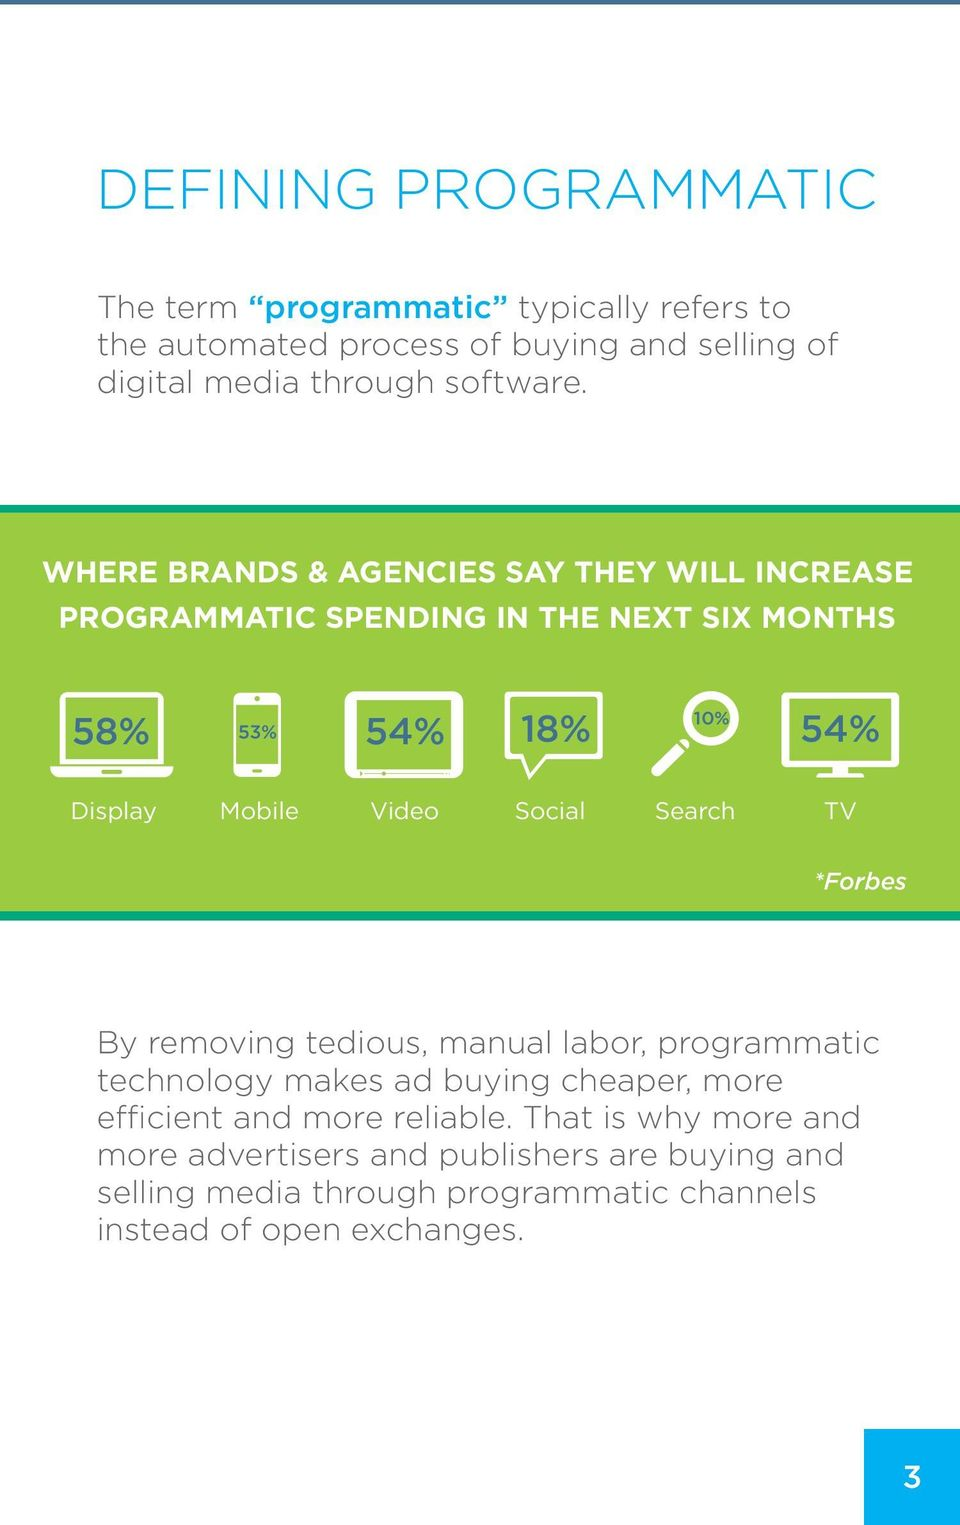 WHERE BRANDS & AGENCIES SAY THEY WILL INCREASE PROGRAMMATIC SPENDING IN THE NEXT SIX MONTHS 58% 53% 54% 18% 10% 54% Display Mobile Video